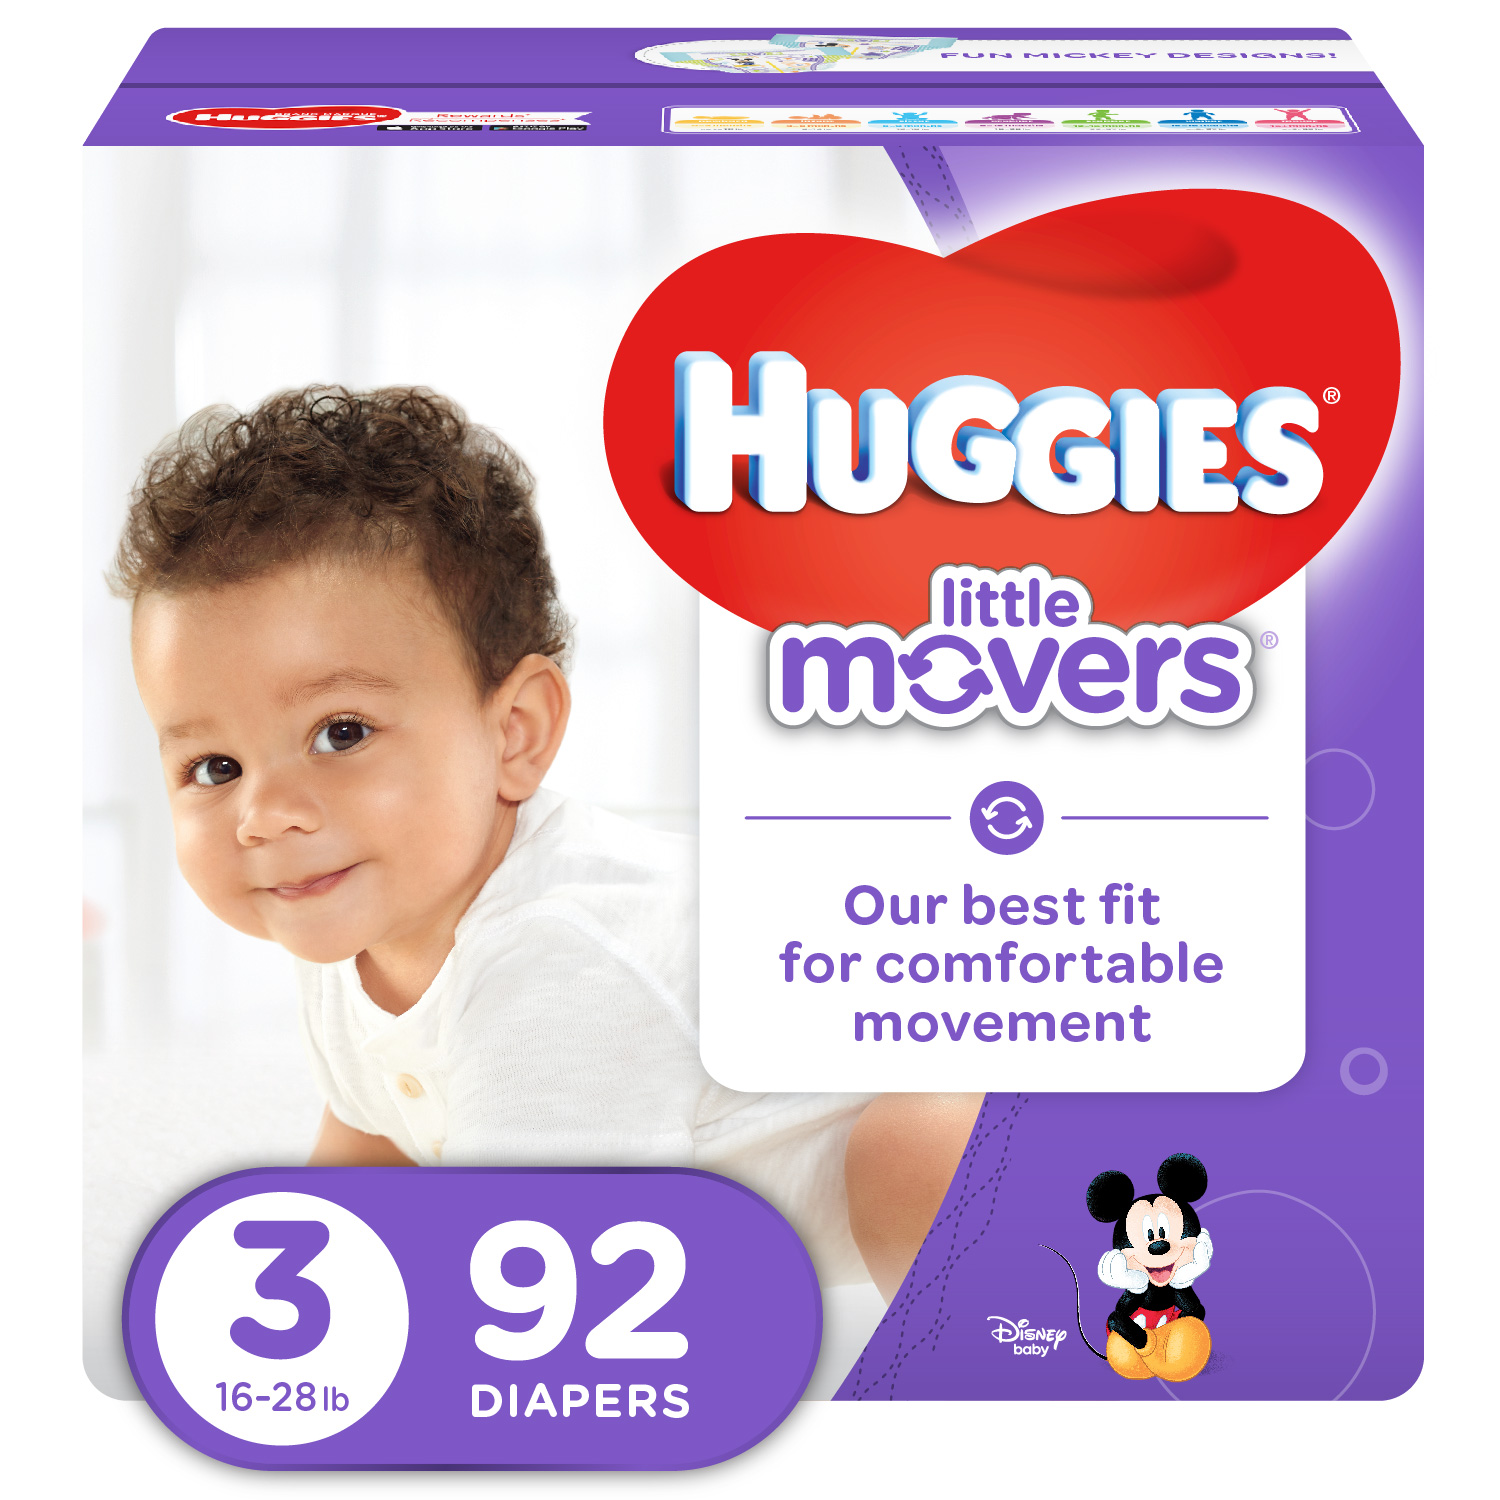 16-28lbs *Free 2 day shipping HUGGIES Little Movers Disposable Diapers Size 3